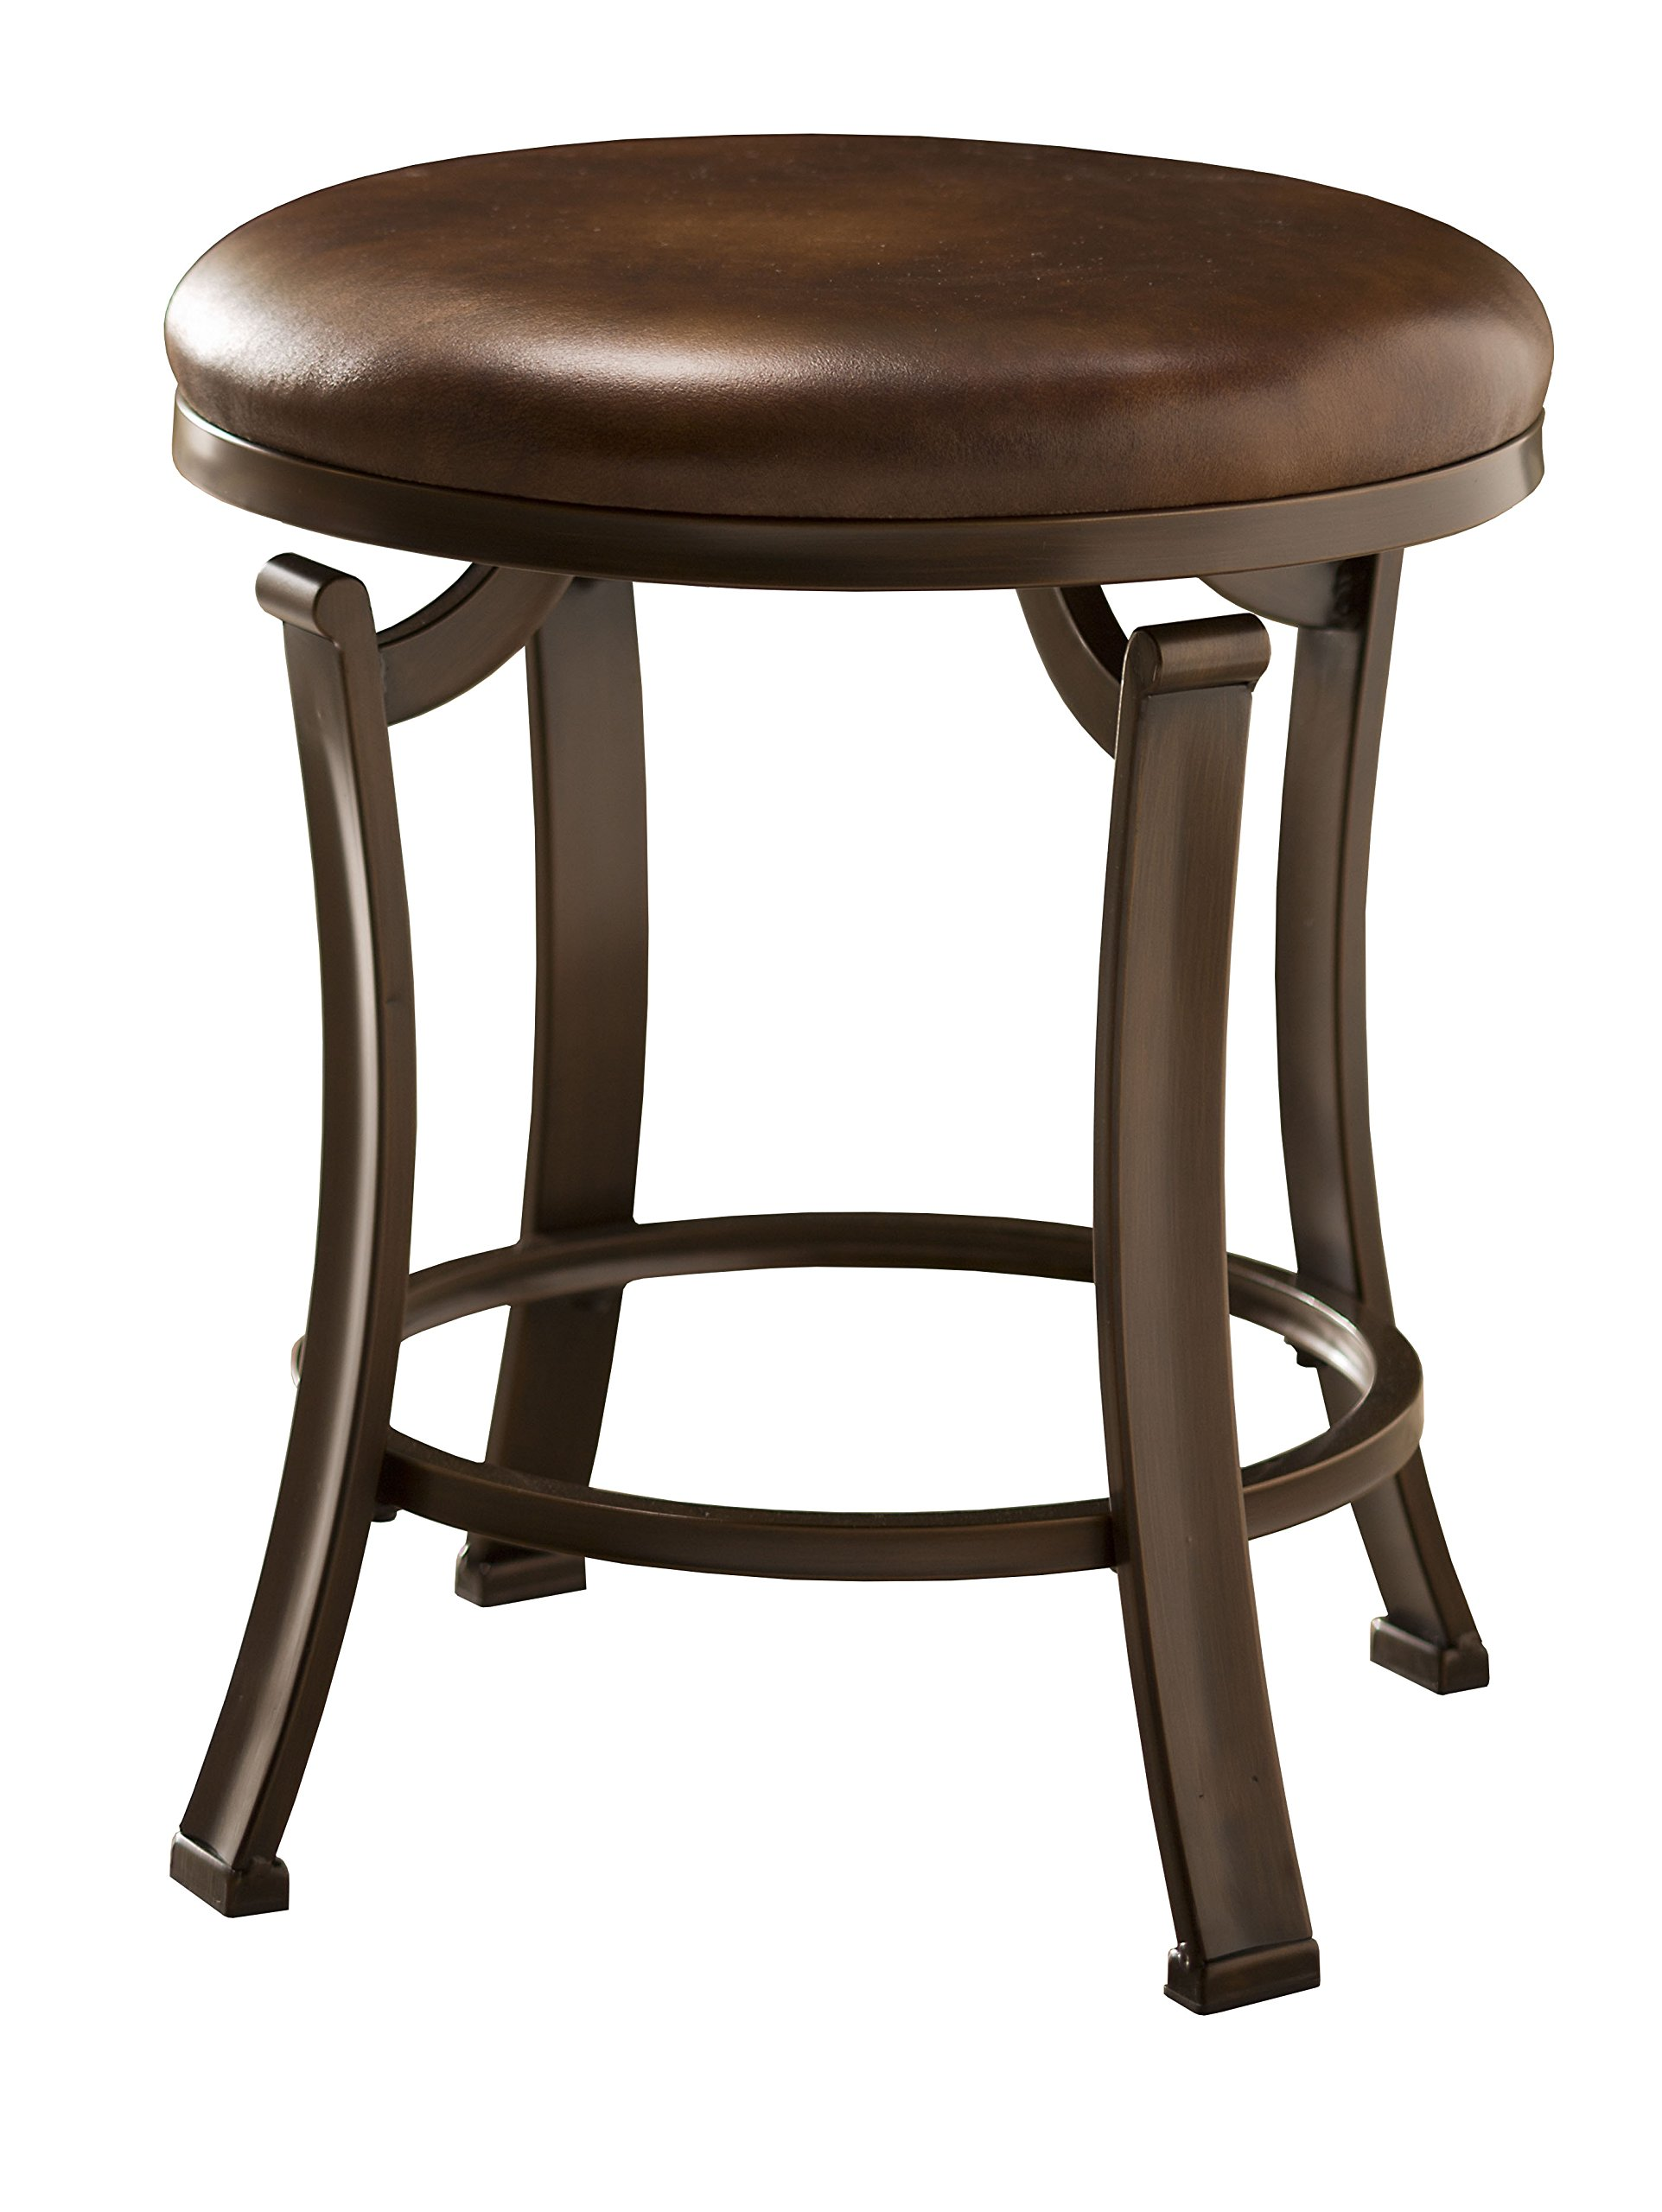 Hillsdale Furniture 50975A Hastings Backless Vanity Stool, Antique Brown by Hillsdale Furniture